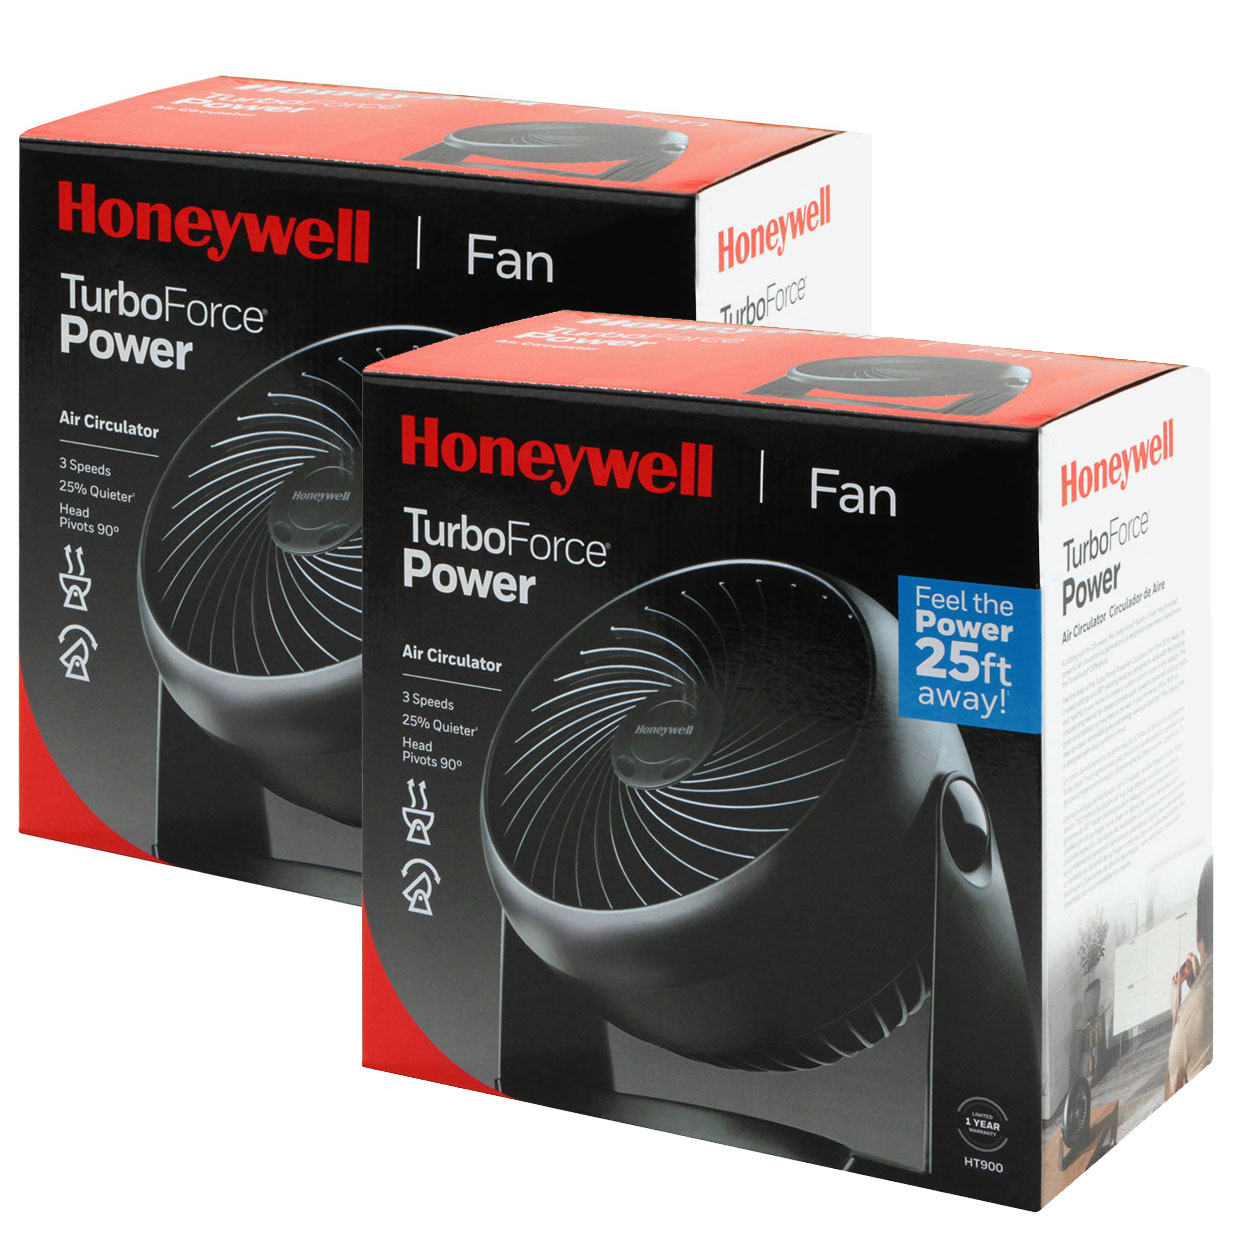 2 Pack Bundle of Honeywell Whole Room Air Circulator Fan, HT-908